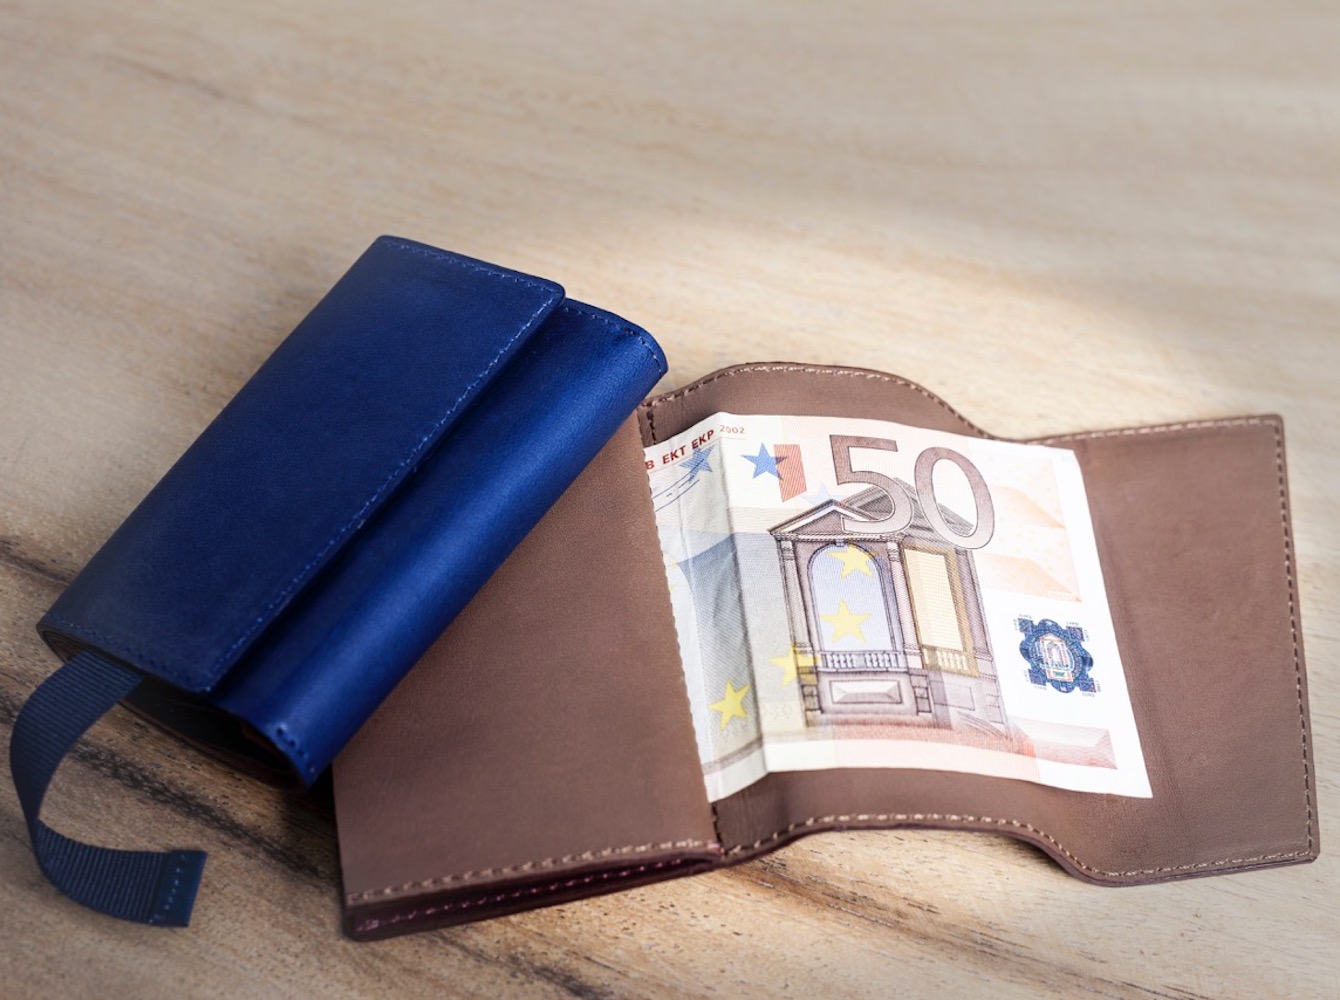 Frenchie – The World's First Speed Wallet